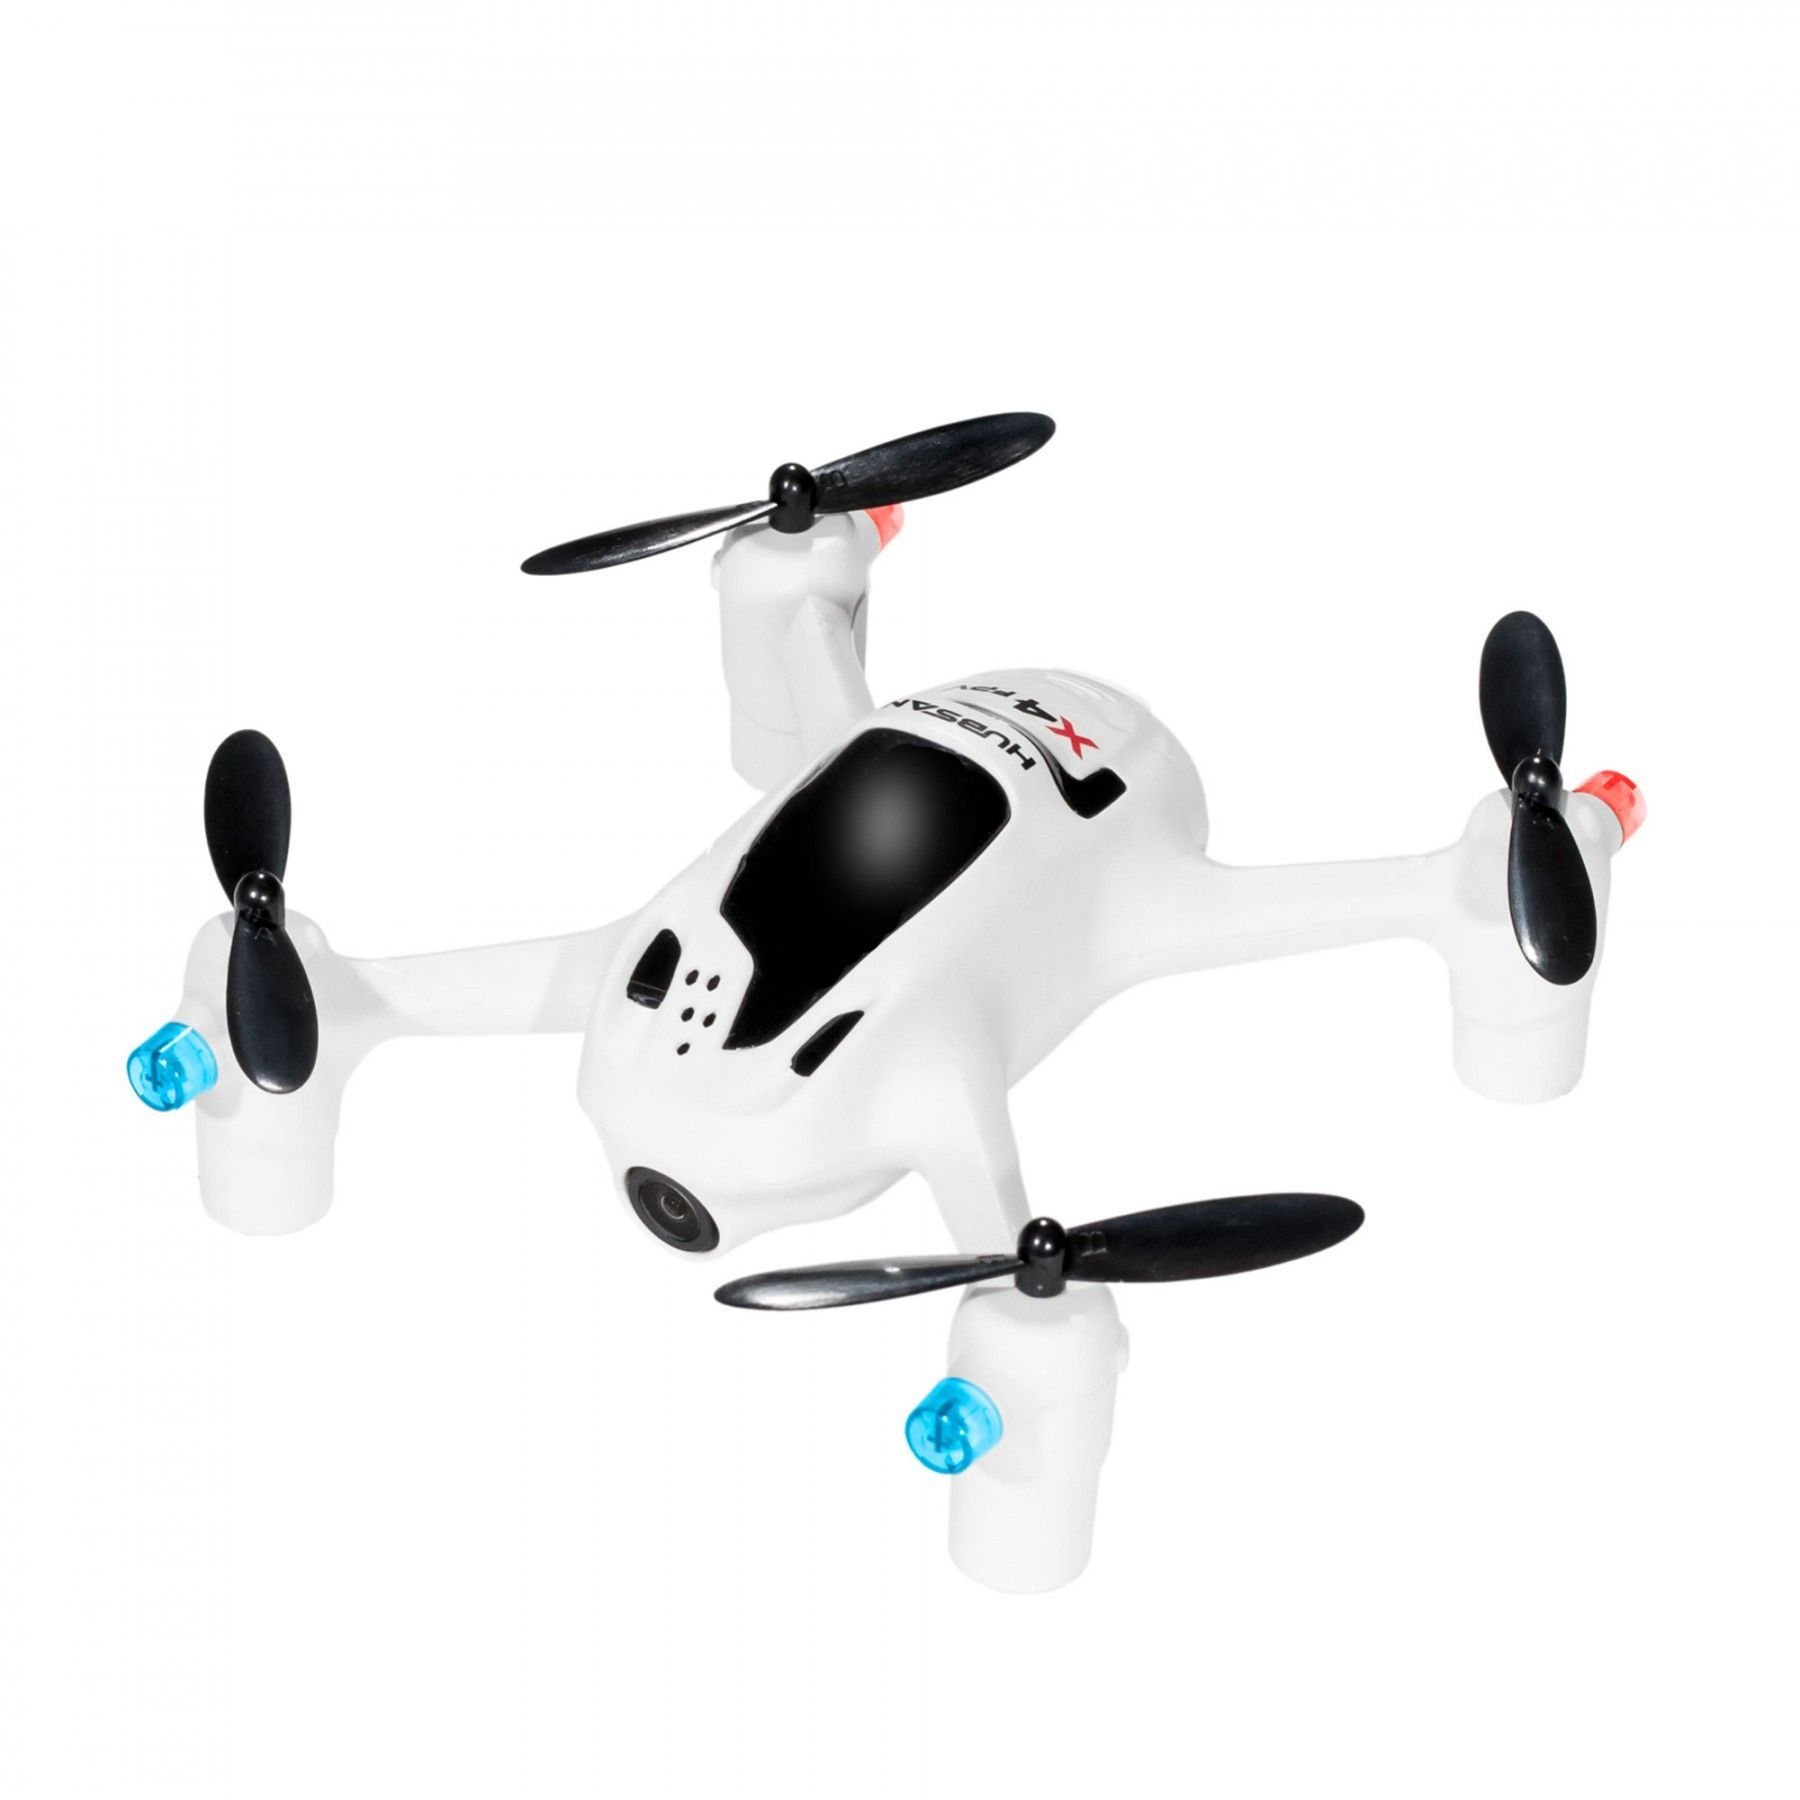 The World/'s Smallest Indoor Outdoor Quadcopter Drone 6 Axis Stabilization